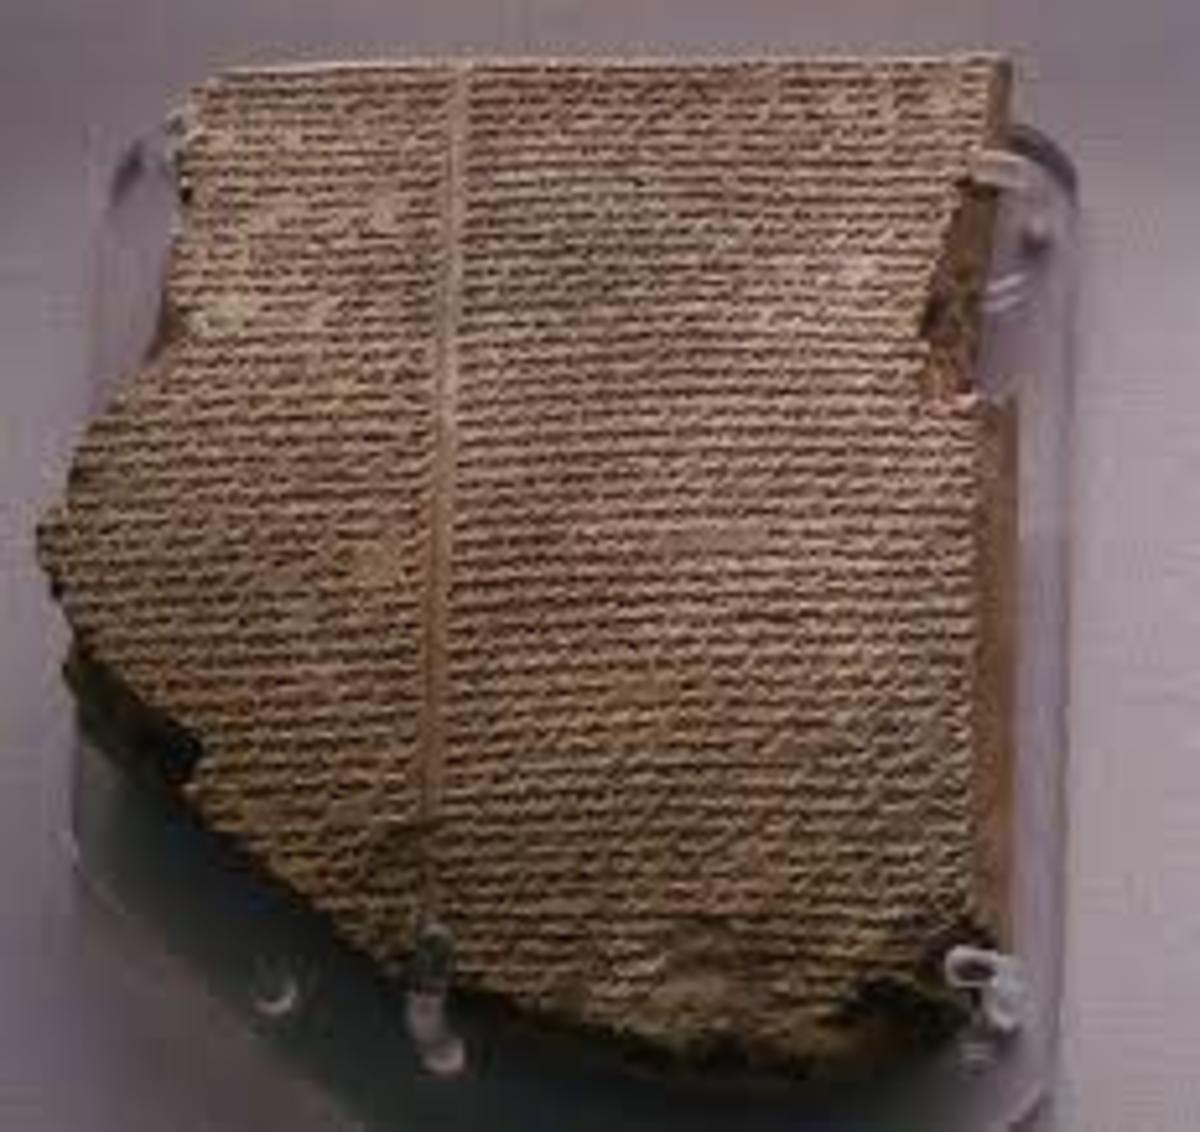 sumerian-values-and-morals-in-ancient-times